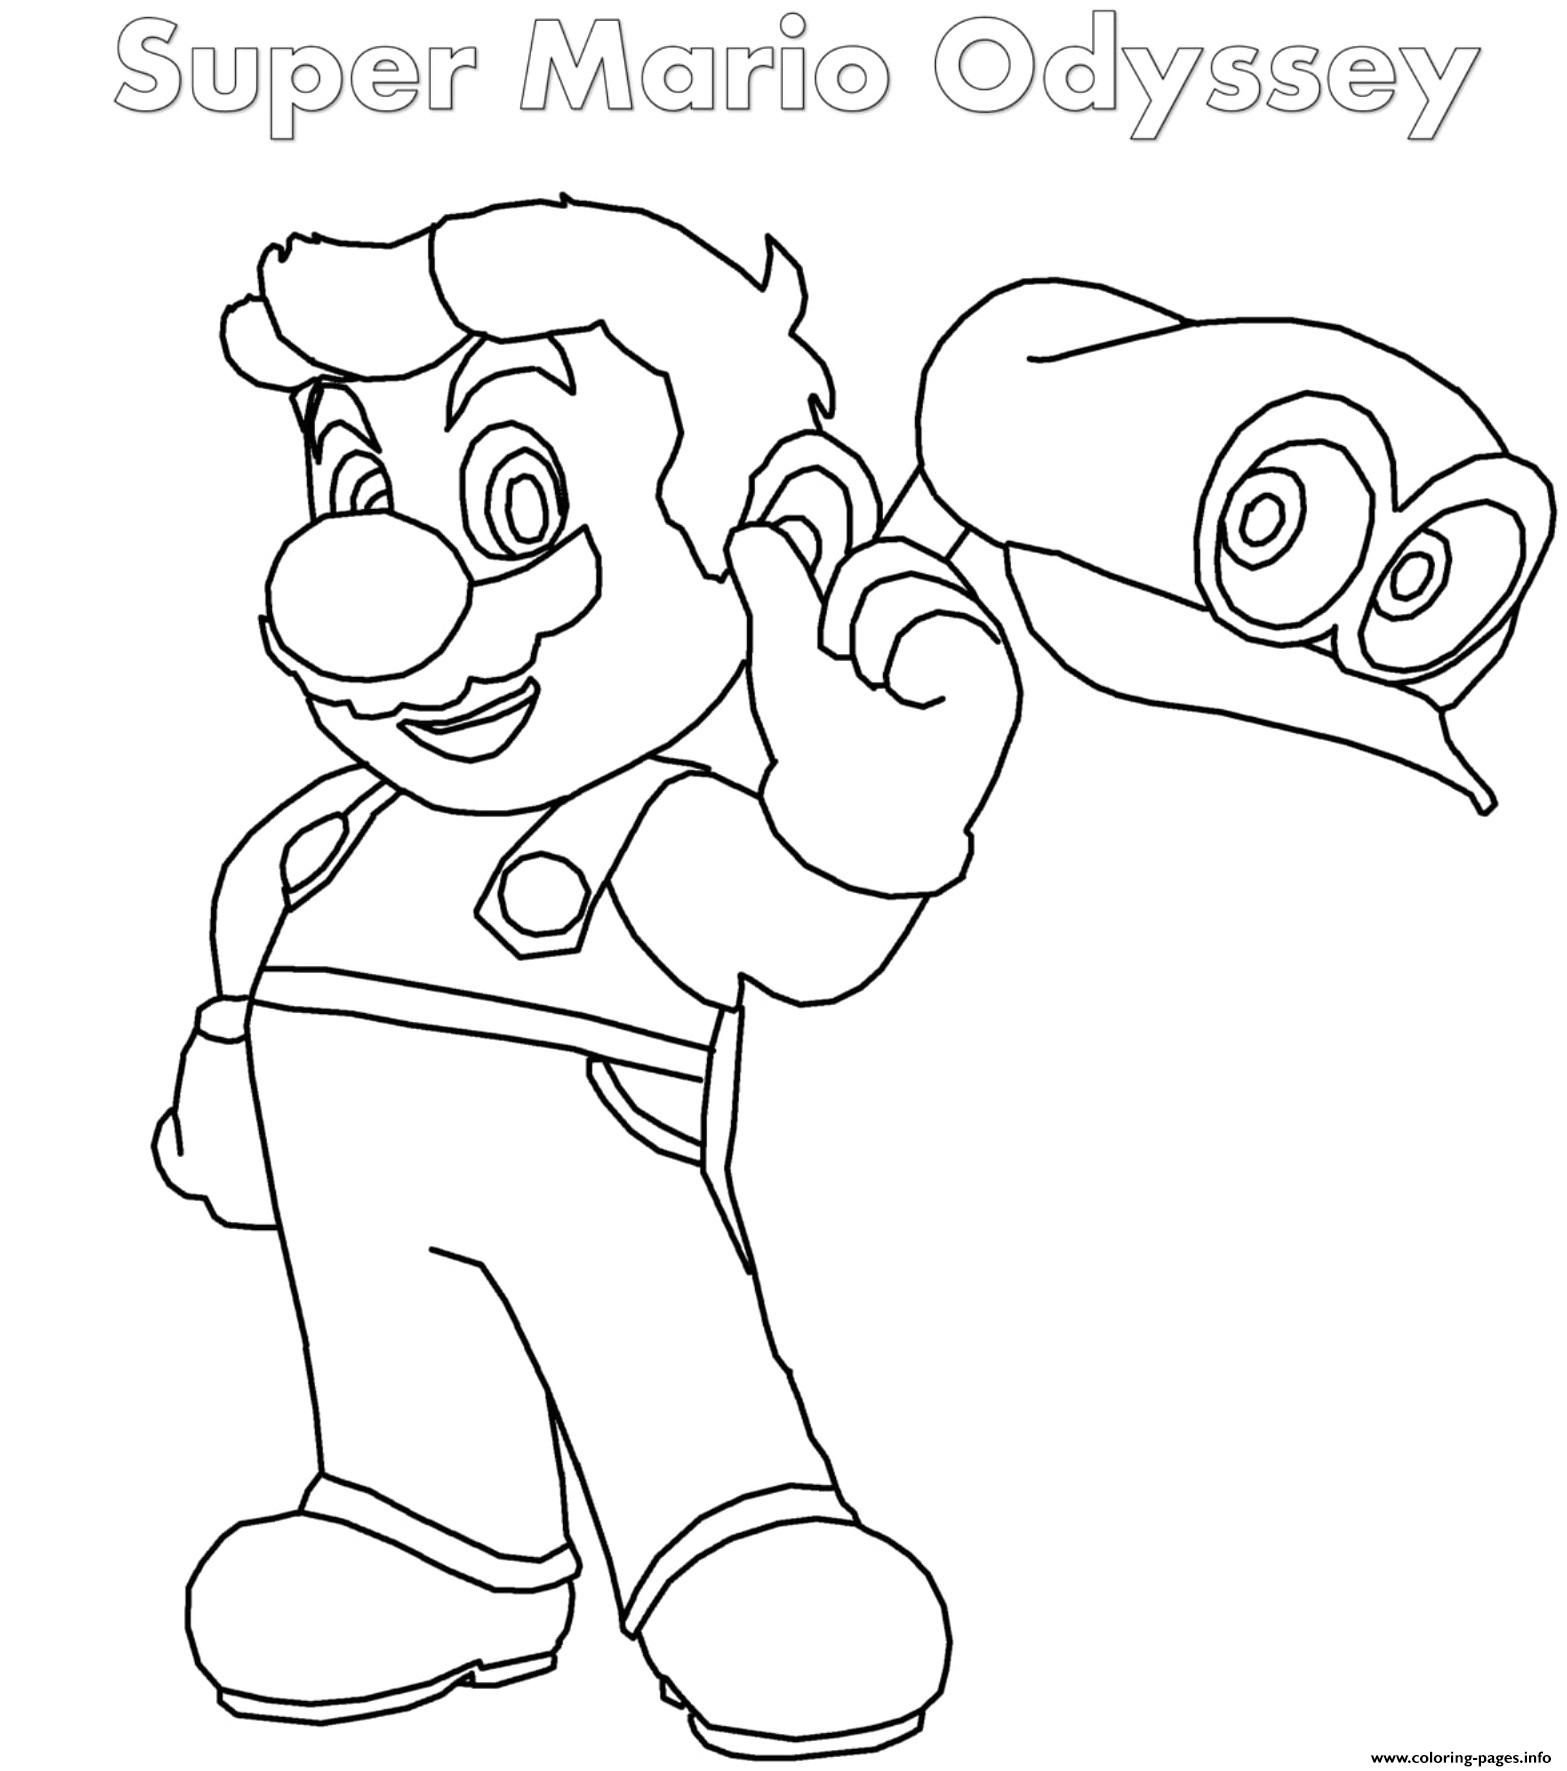 Print Super Mario Odyssey Coloring Pages In 2021 Mario Coloring Pages Super Mario Coloring Pages Coloring Pages